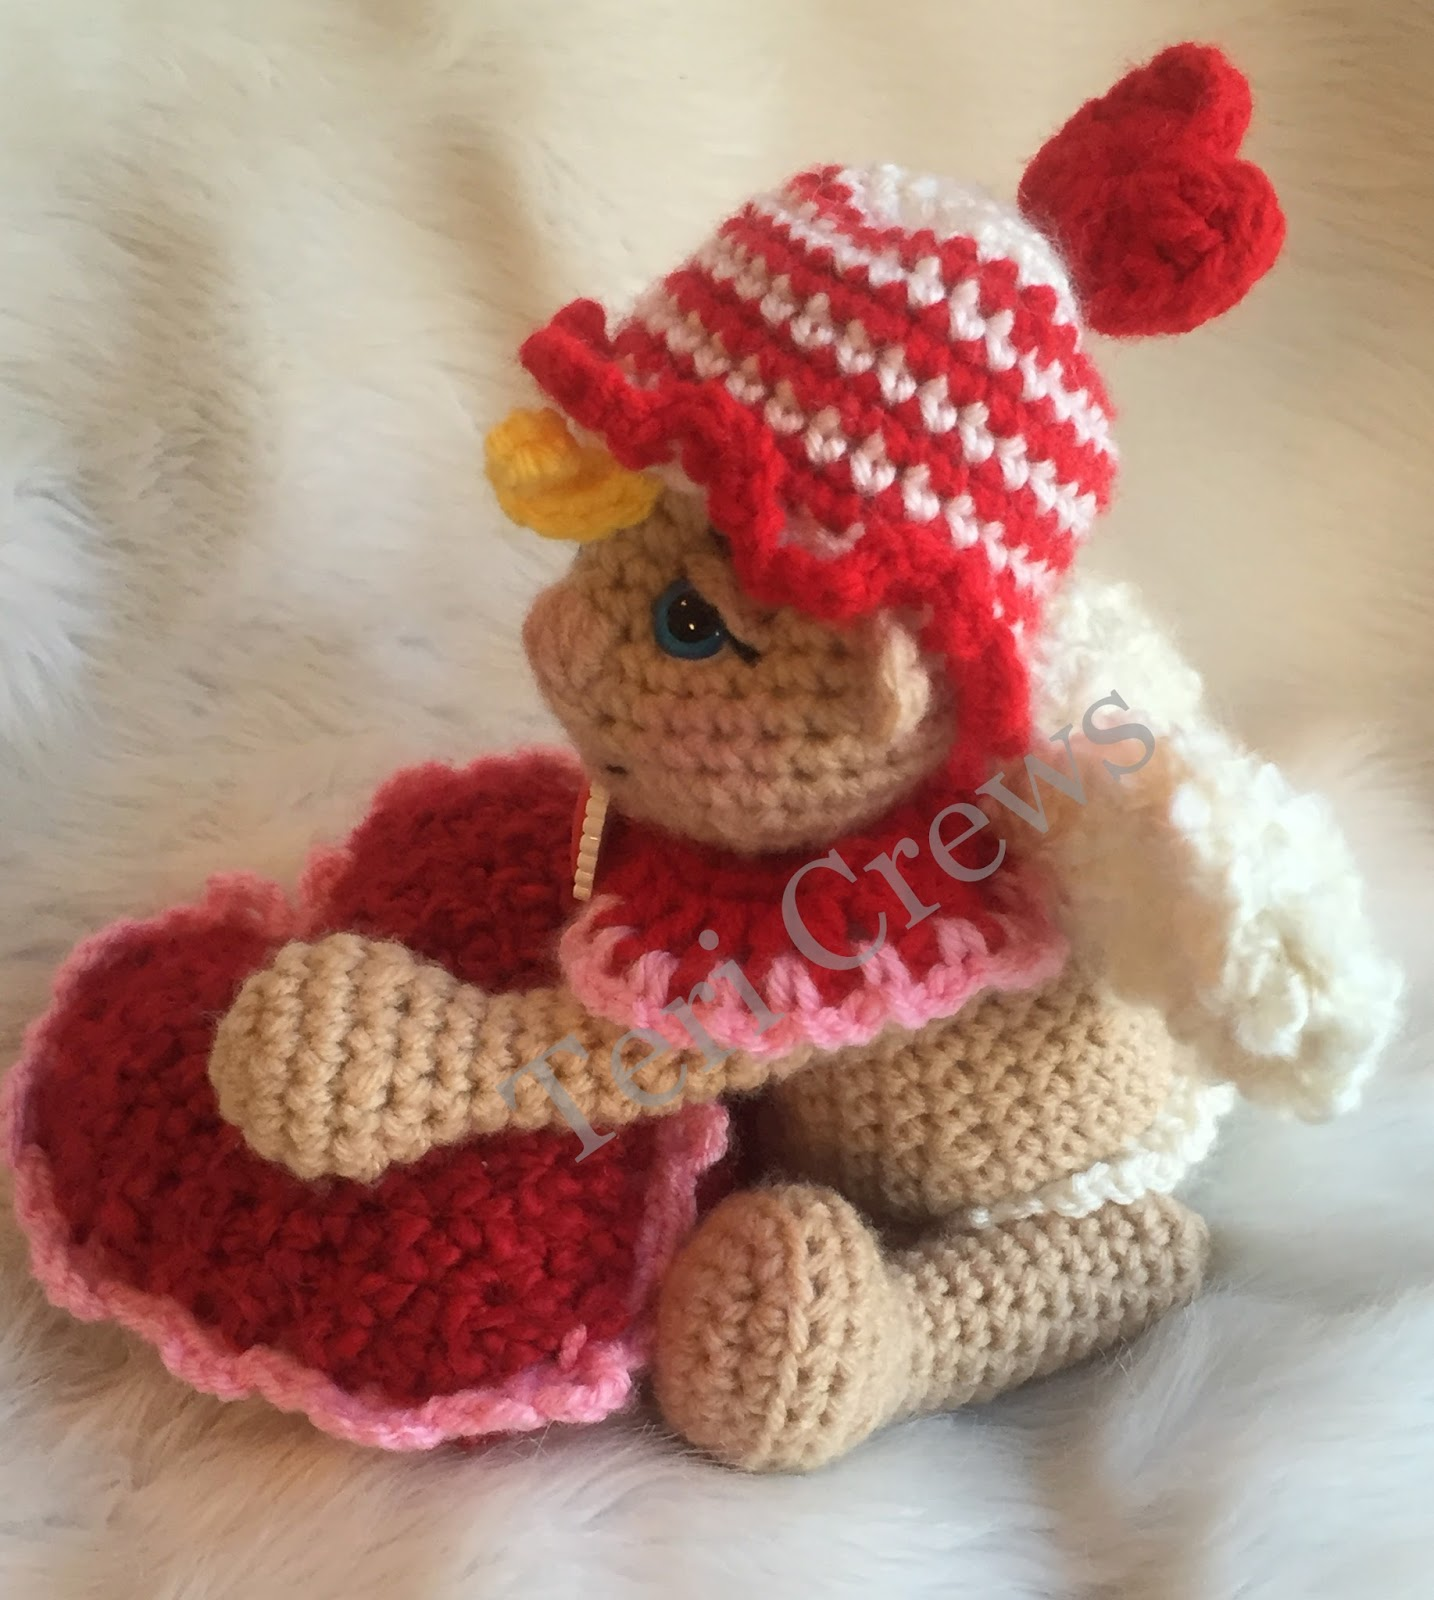 Teris Blog: New Cute Cupid Crochet Pattern